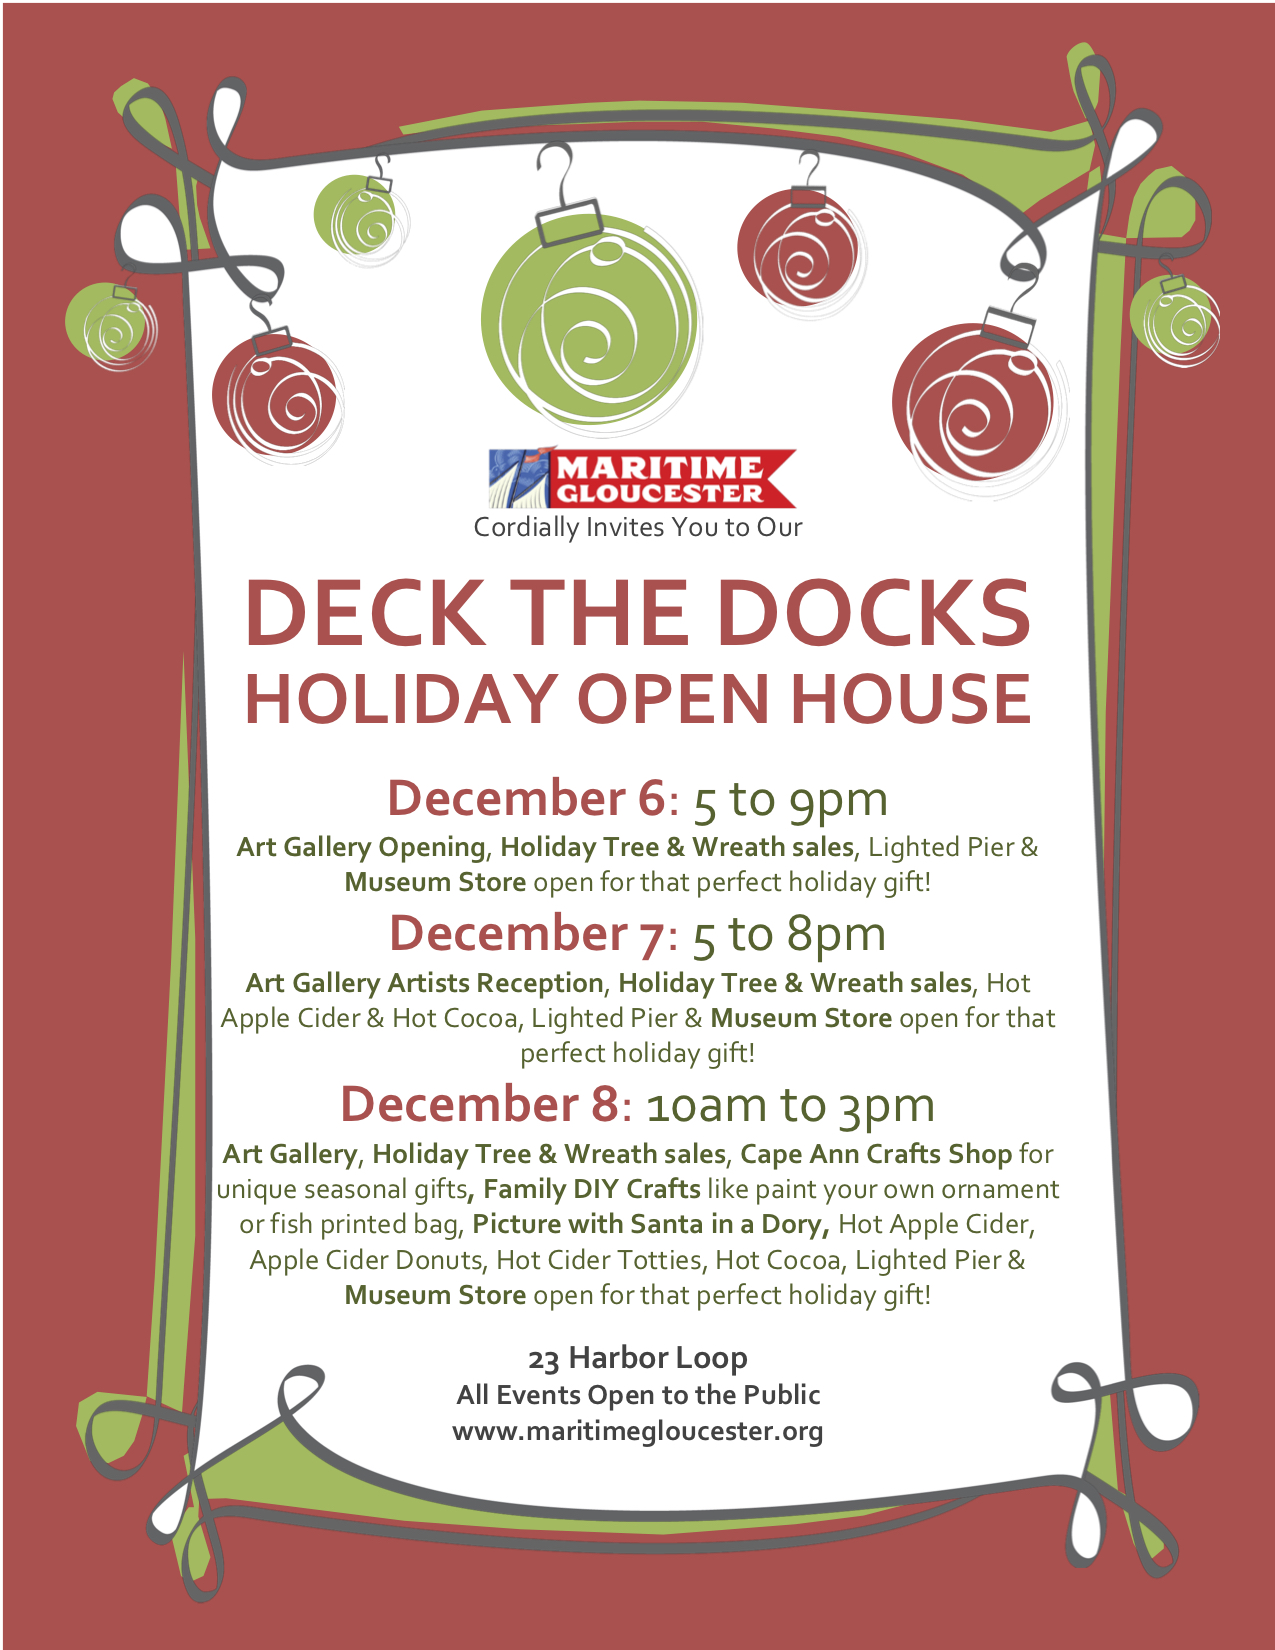 Deck The Docks Flier - Red bg